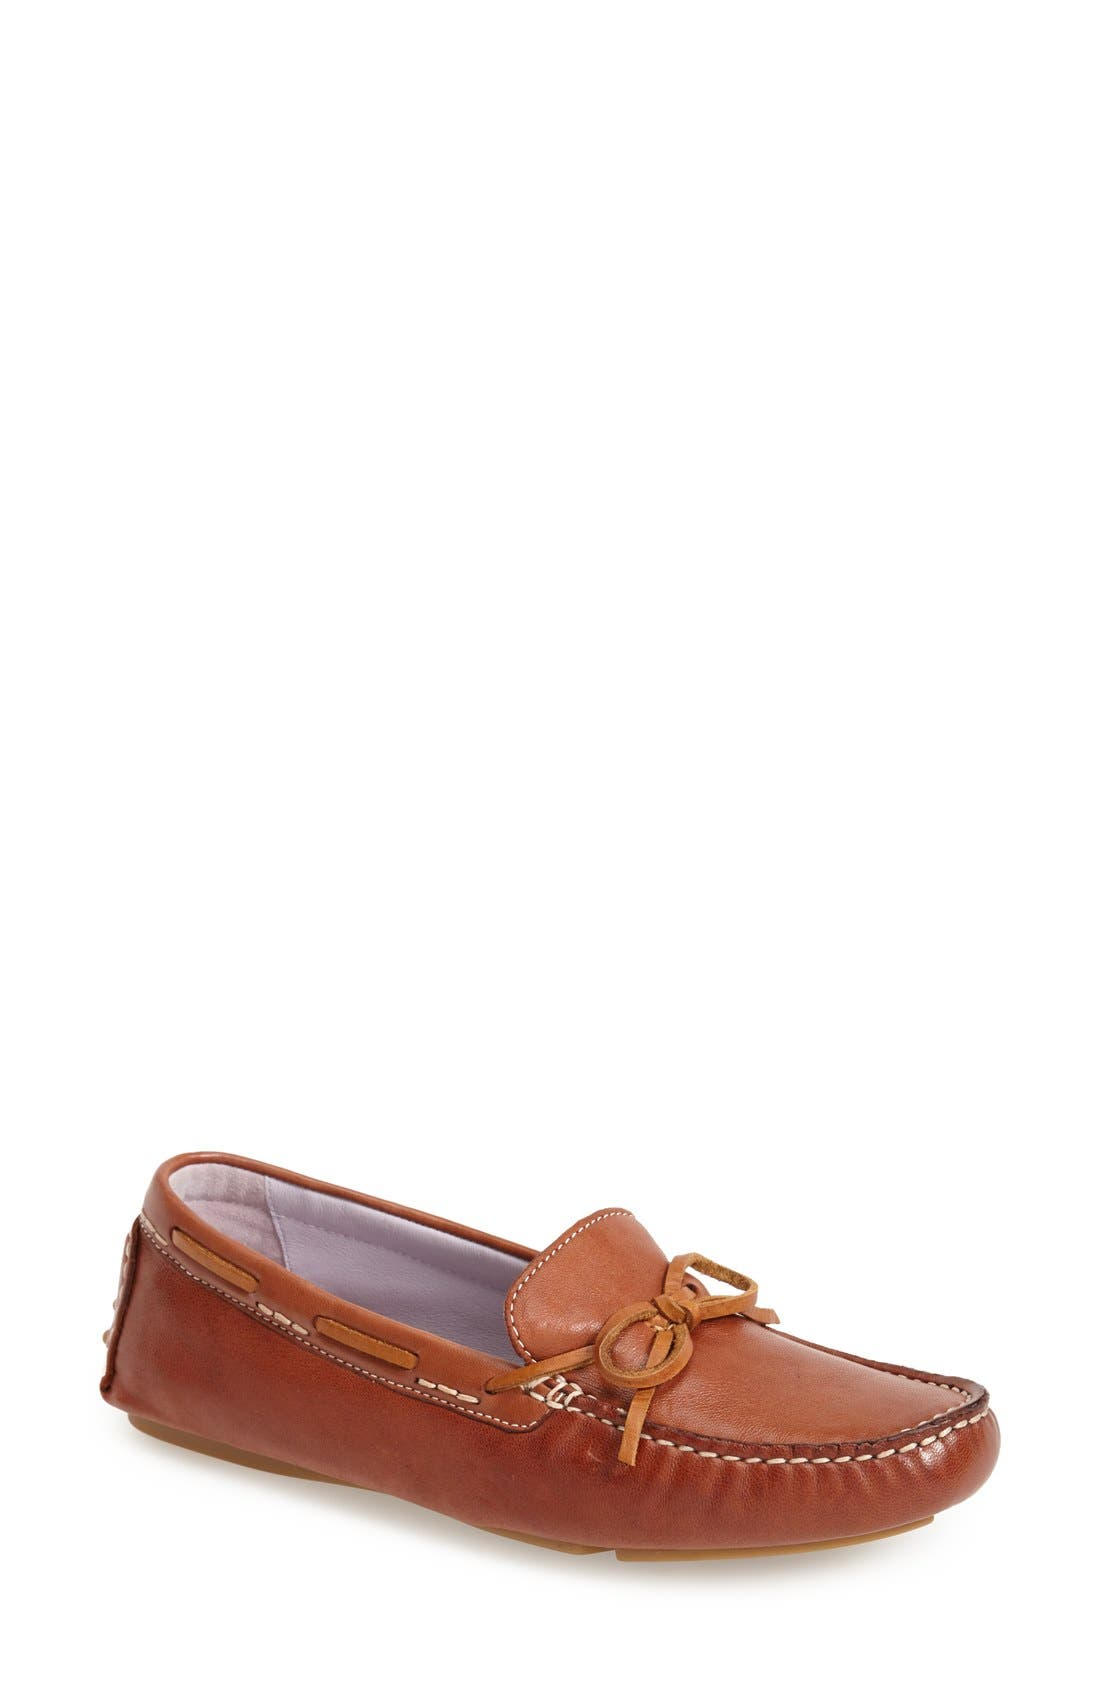 'Maggie' Moccasin,                             Main thumbnail 1, color,                             741